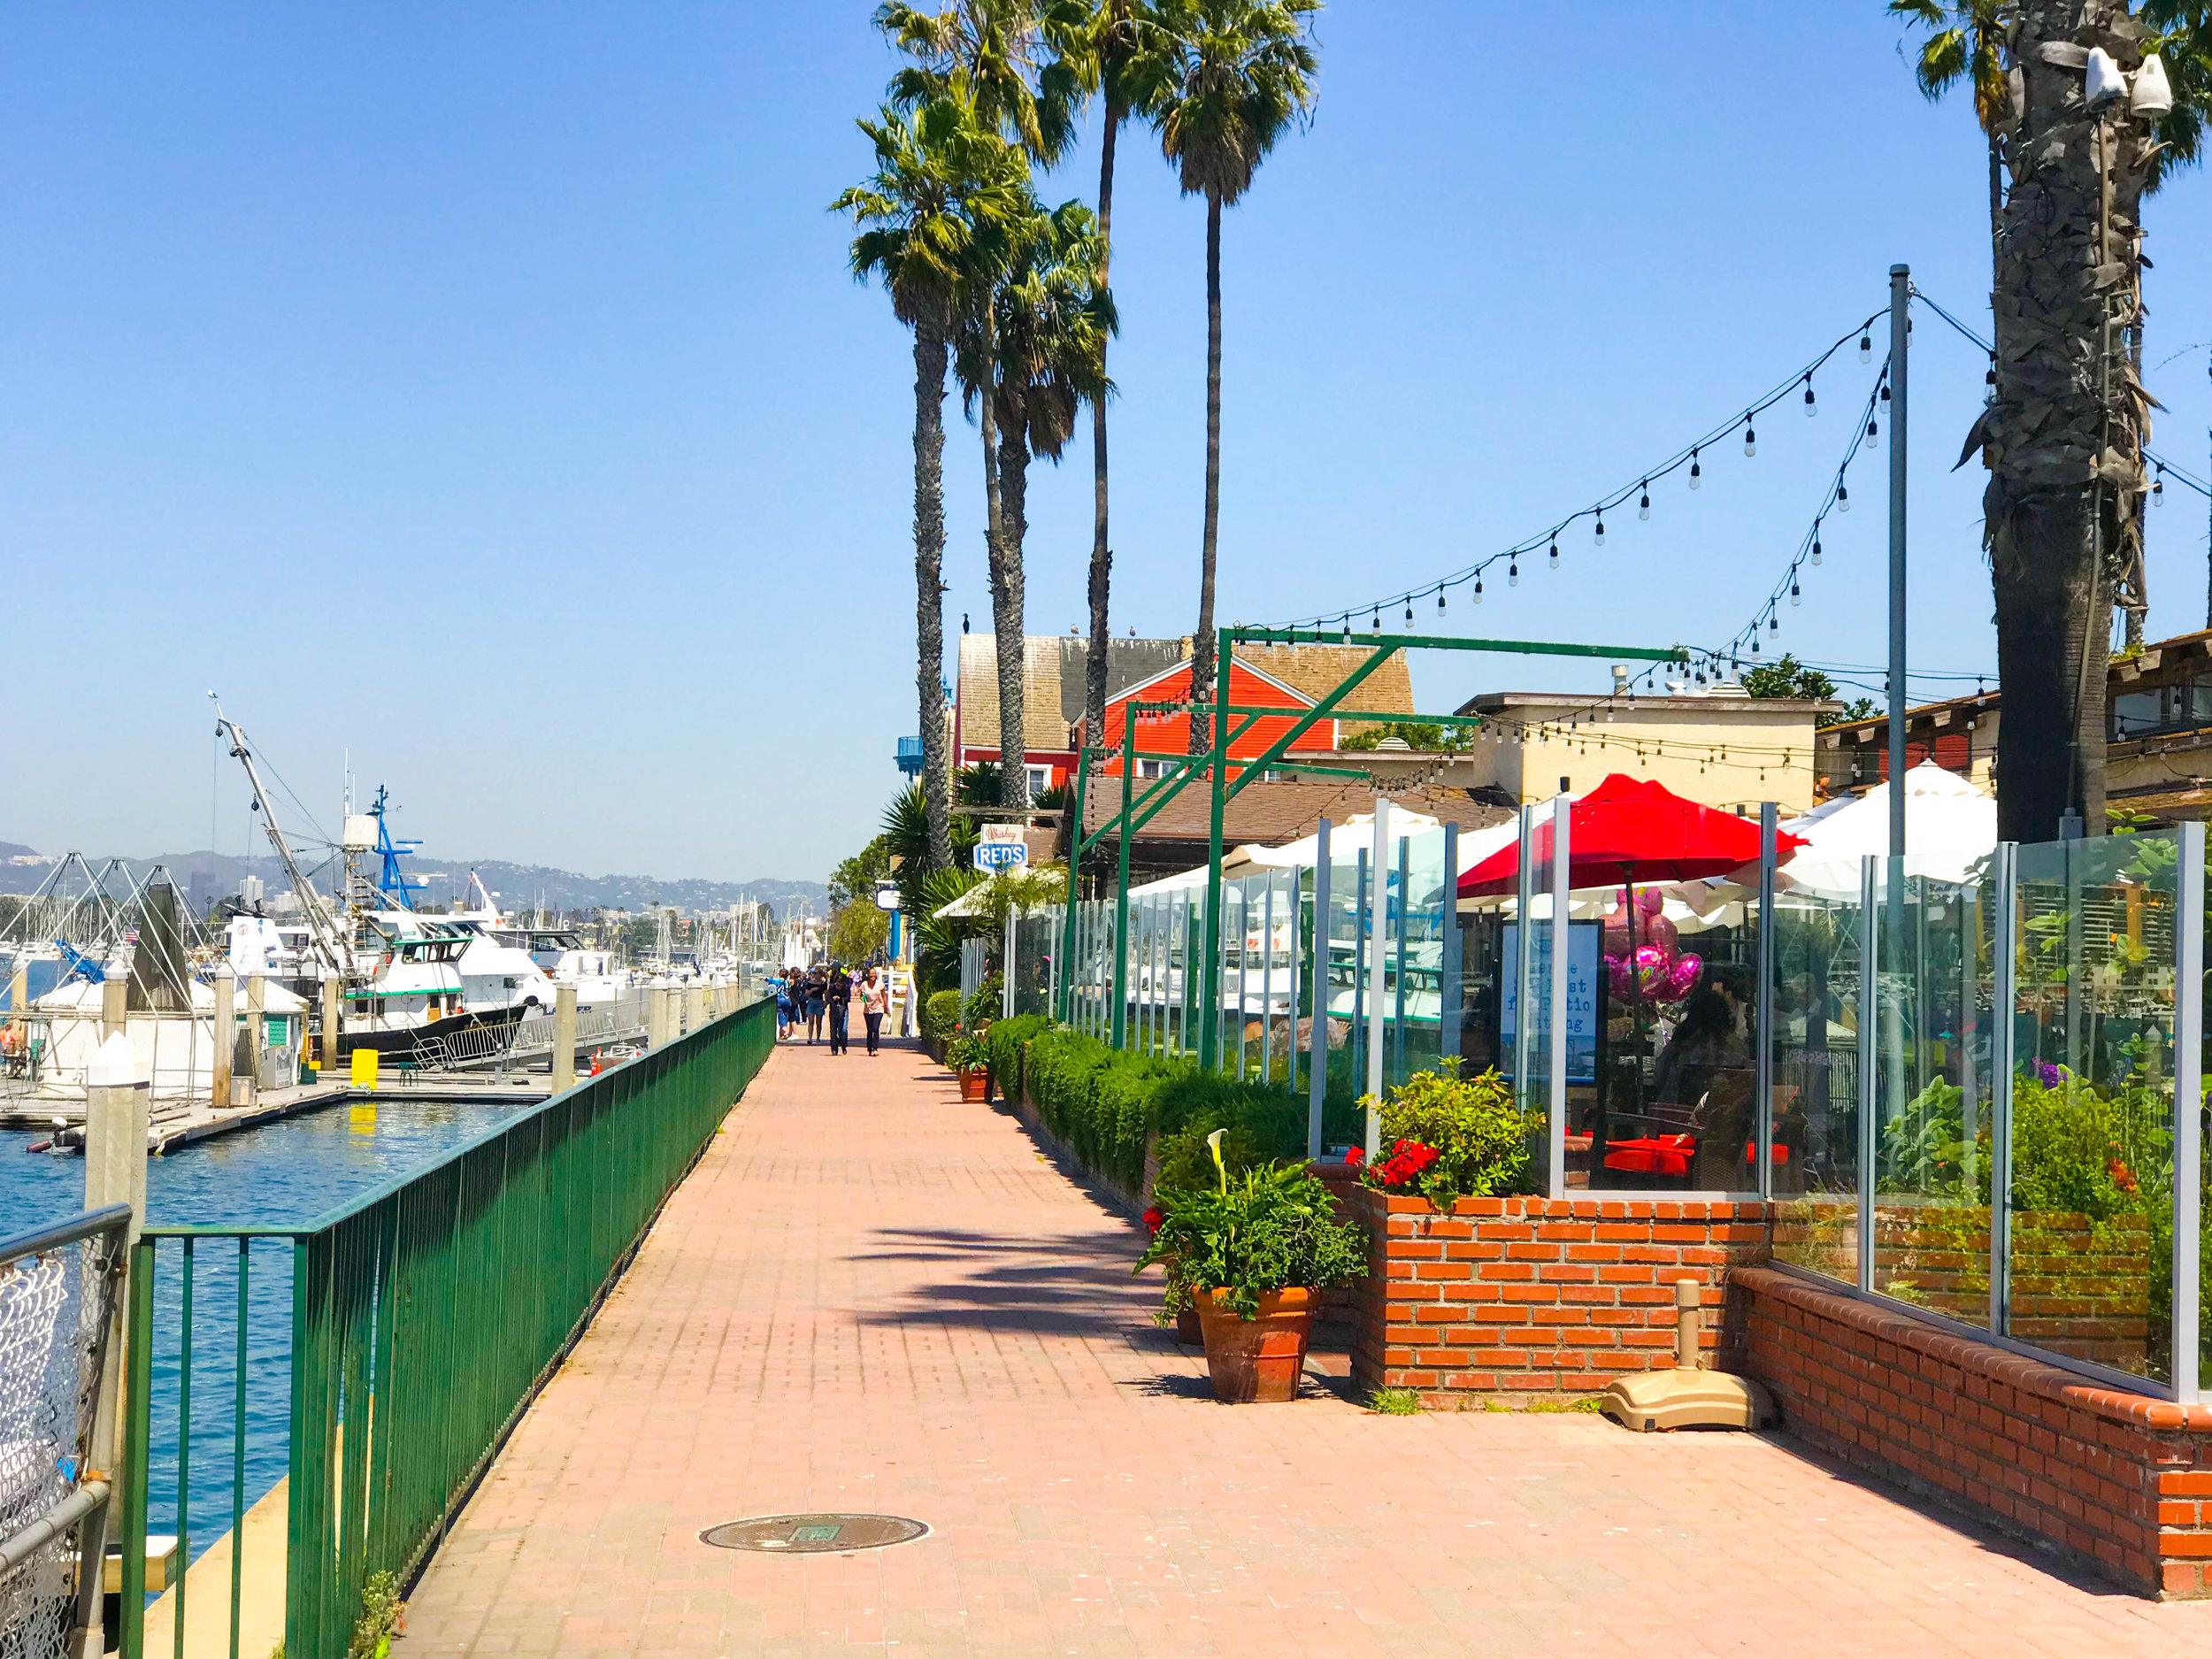 Whiskey Reds Brunch Spot Marina Del Rey